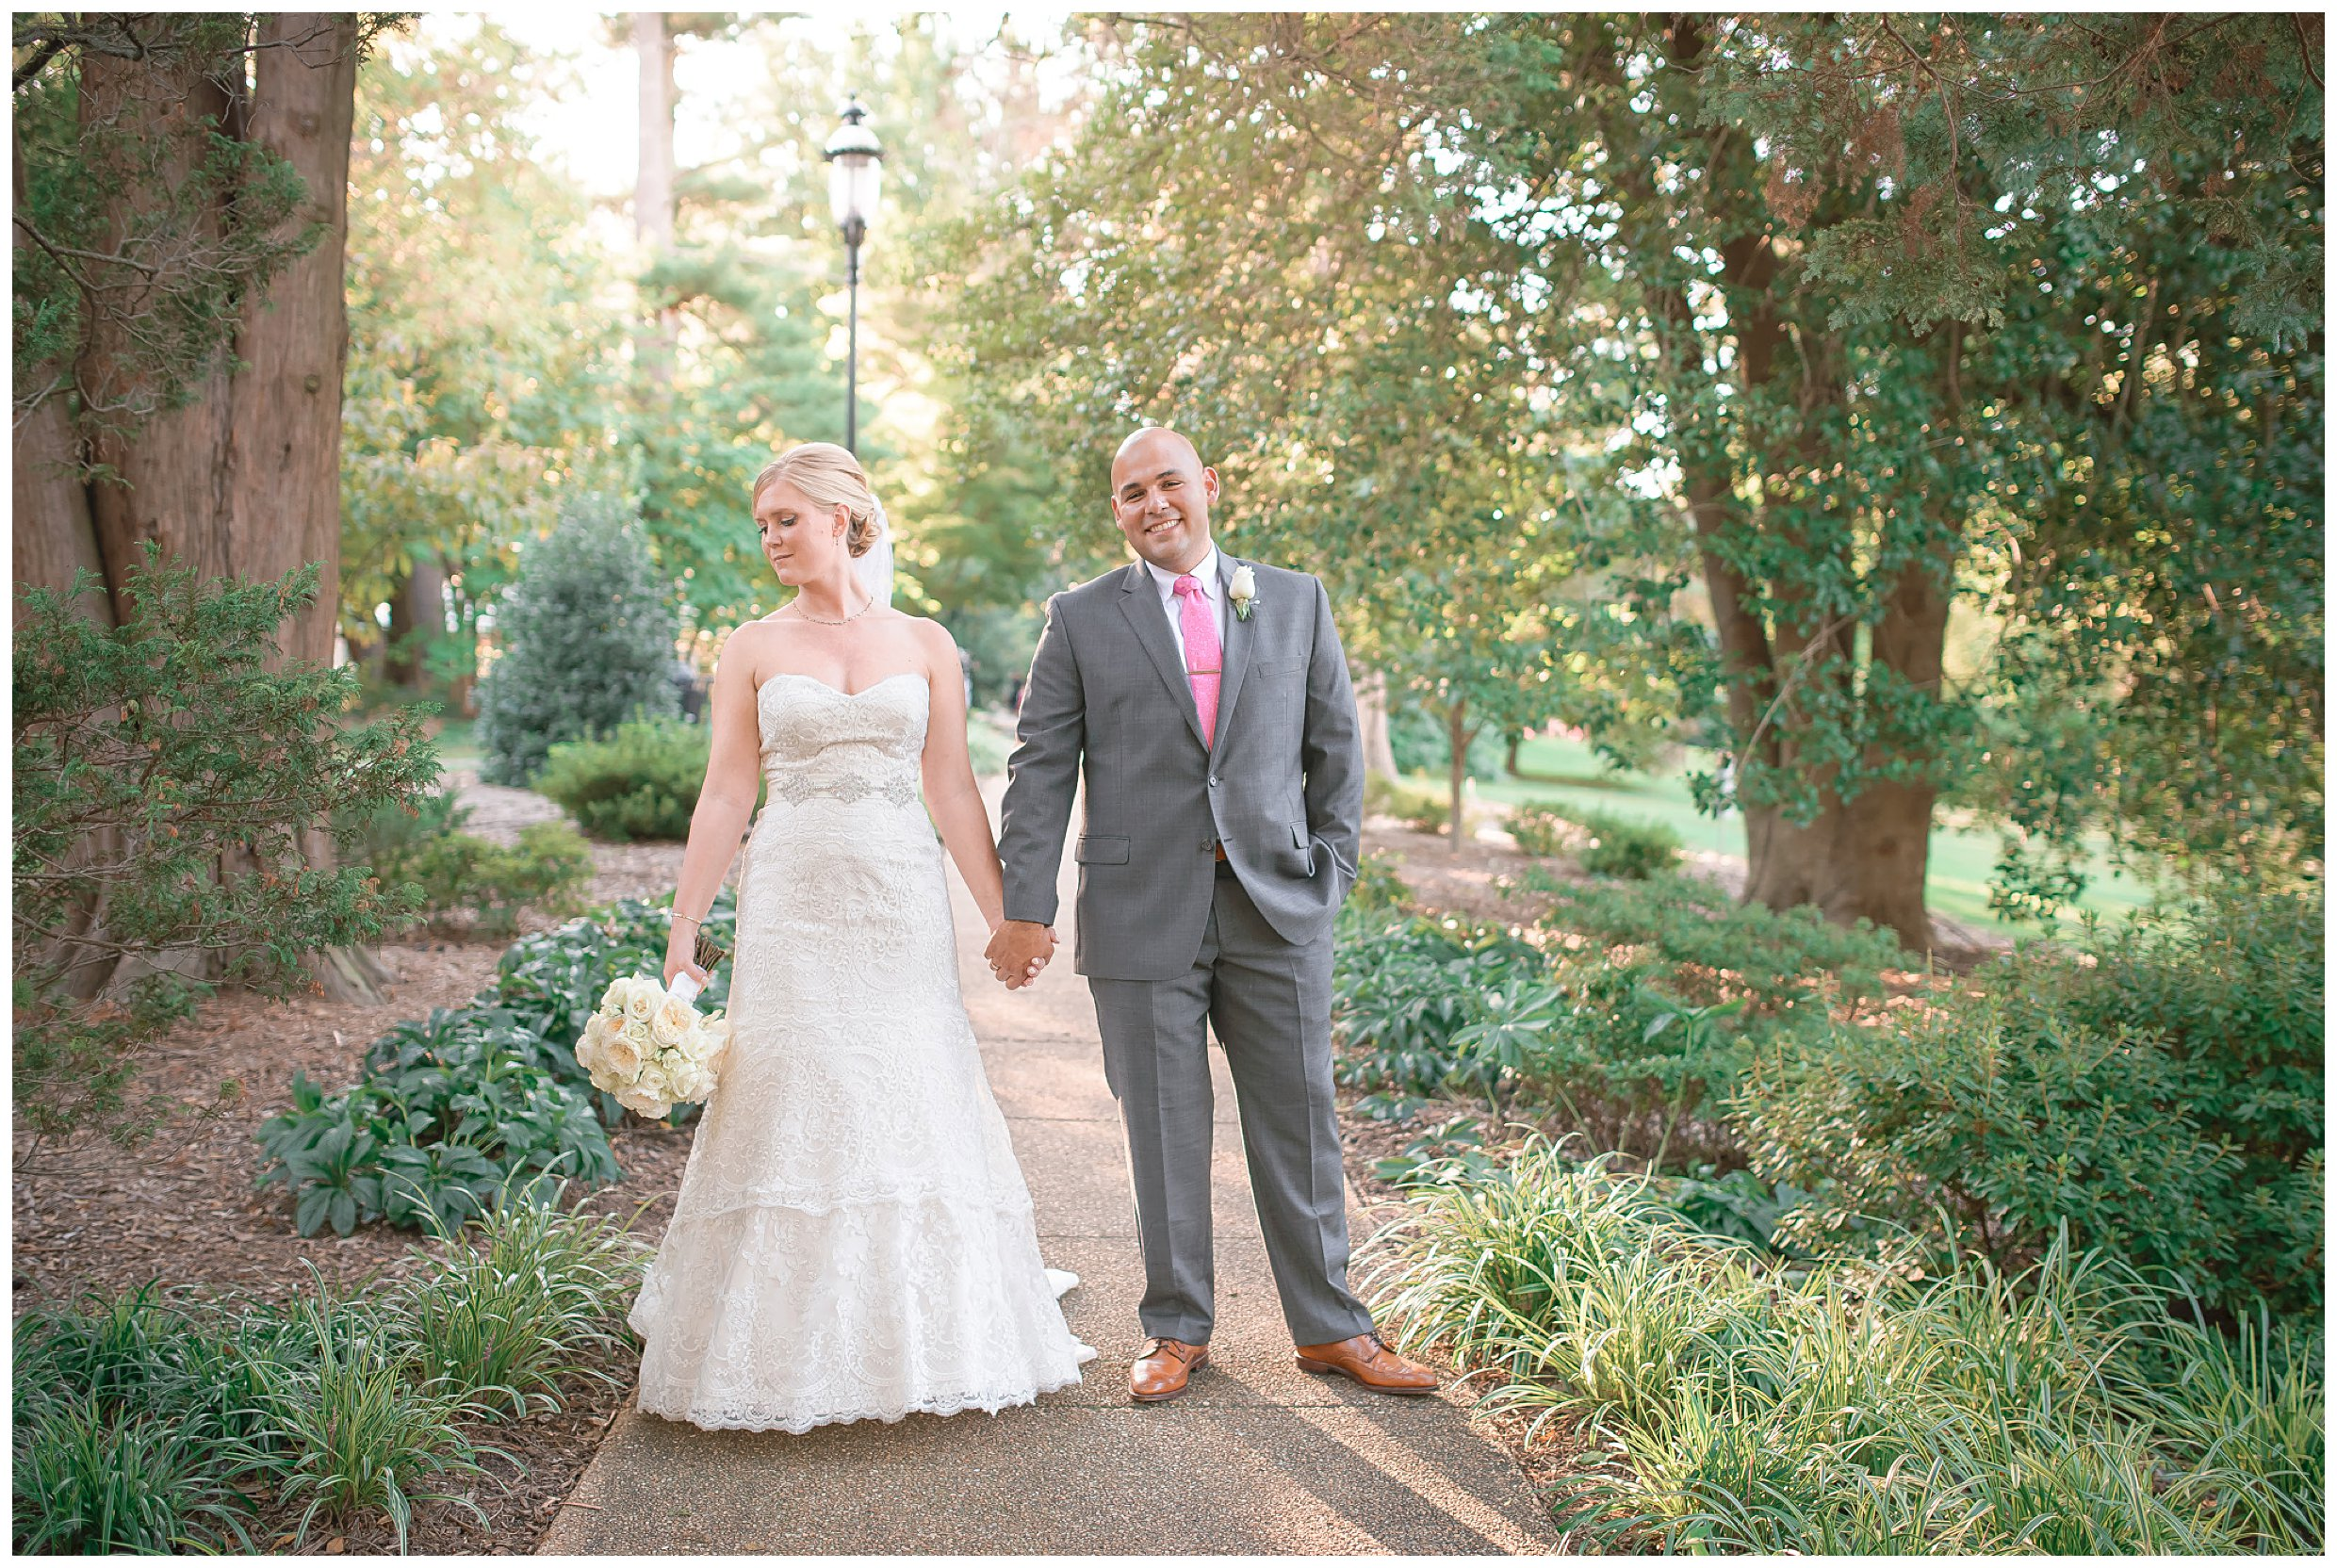 Jose-and-Jacqui-Hendry-house-arlington-virginia-wedding-photographer-charleston-south carolina-wedding-photographer-navy-blue-pink-sunset-wedding-outdoor-earthy-eco-friendly-photographer-viginia wedding--585.jpg